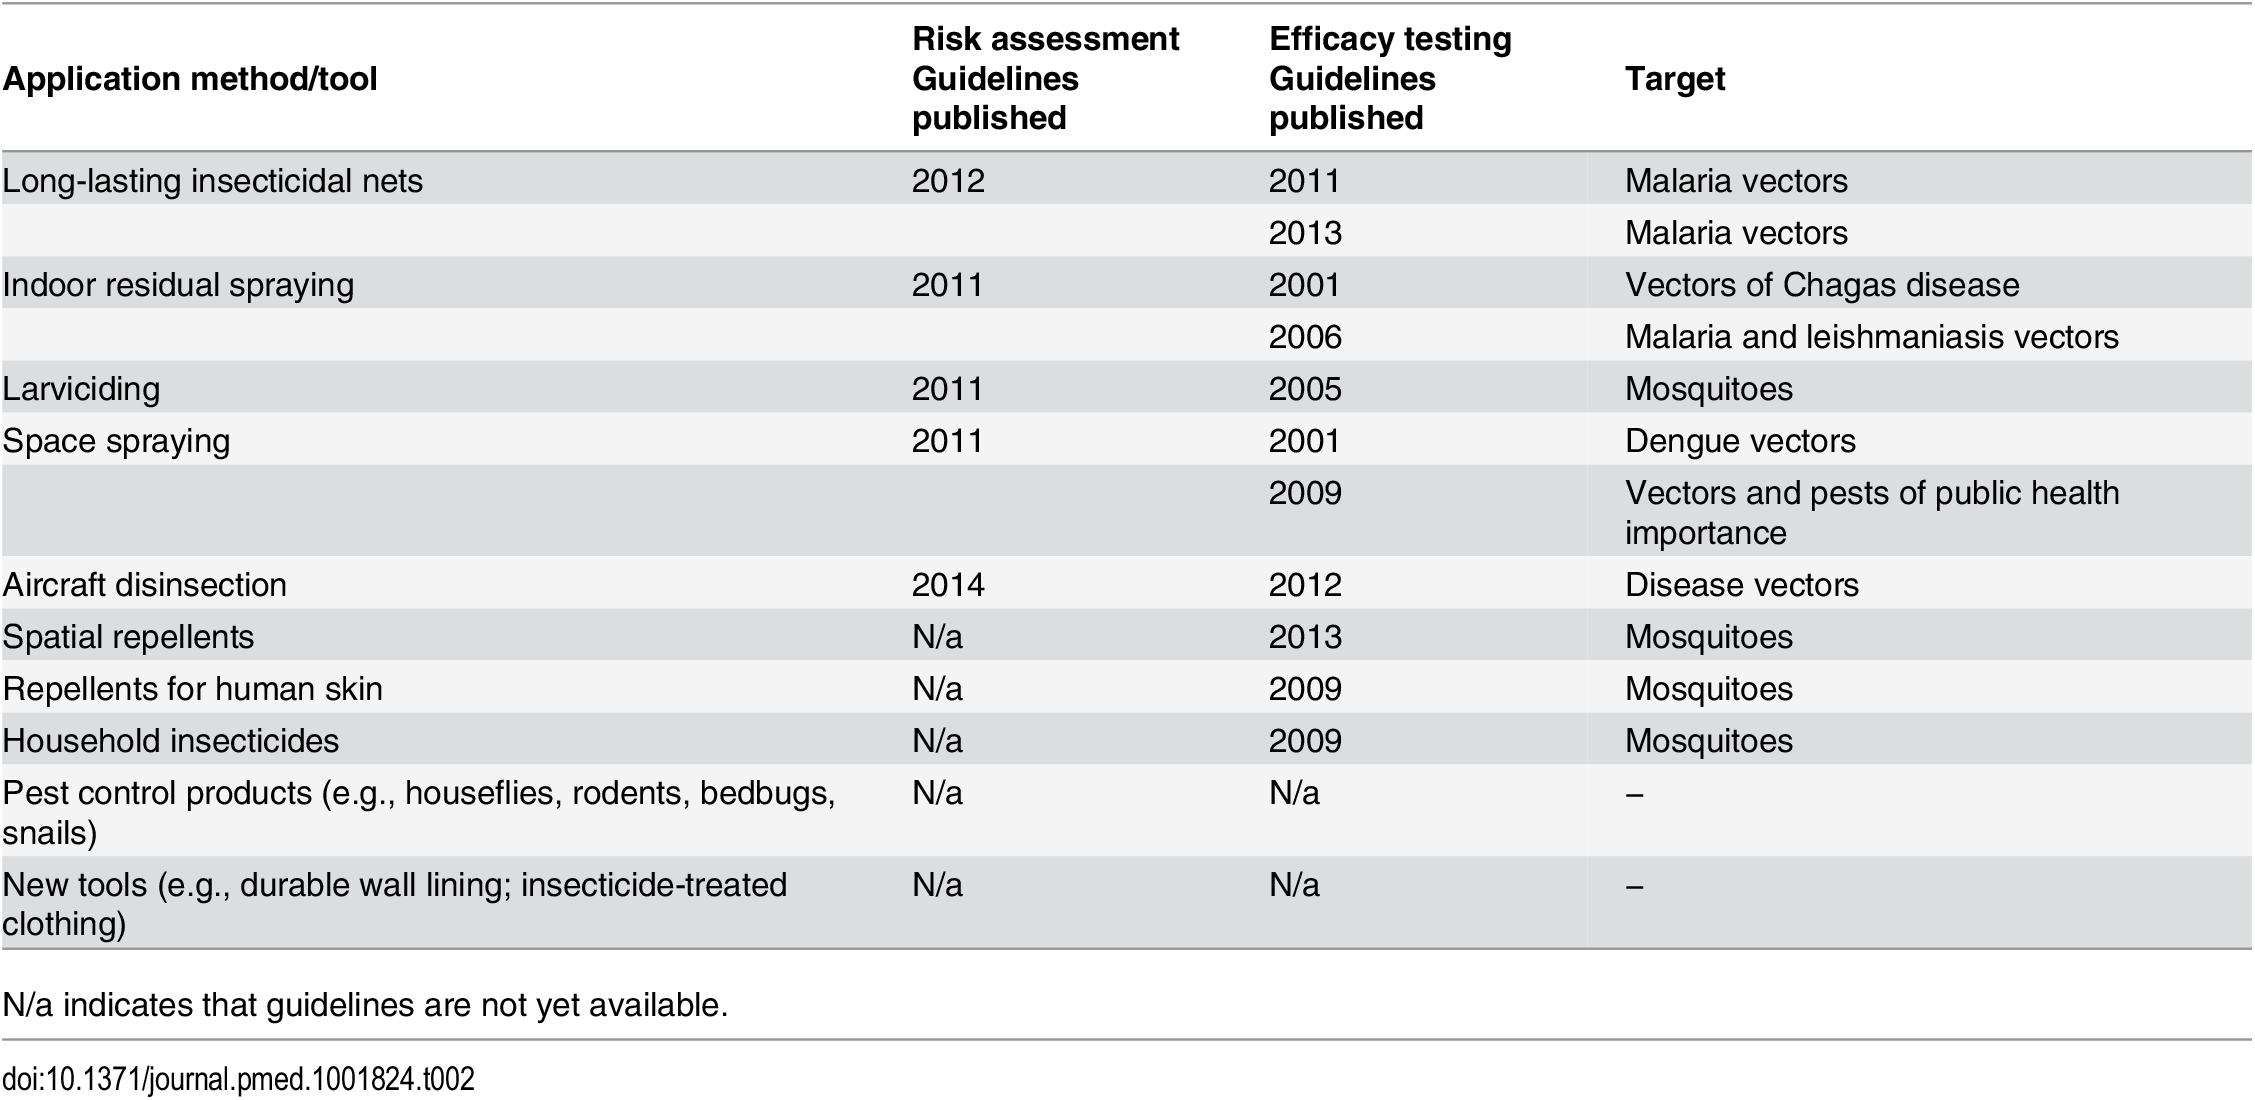 Global authoritative guidelines on efficacy testing and risk assessment in relation to each vector-control application method or tool [<em class=&quot;ref&quot;>23</em>].